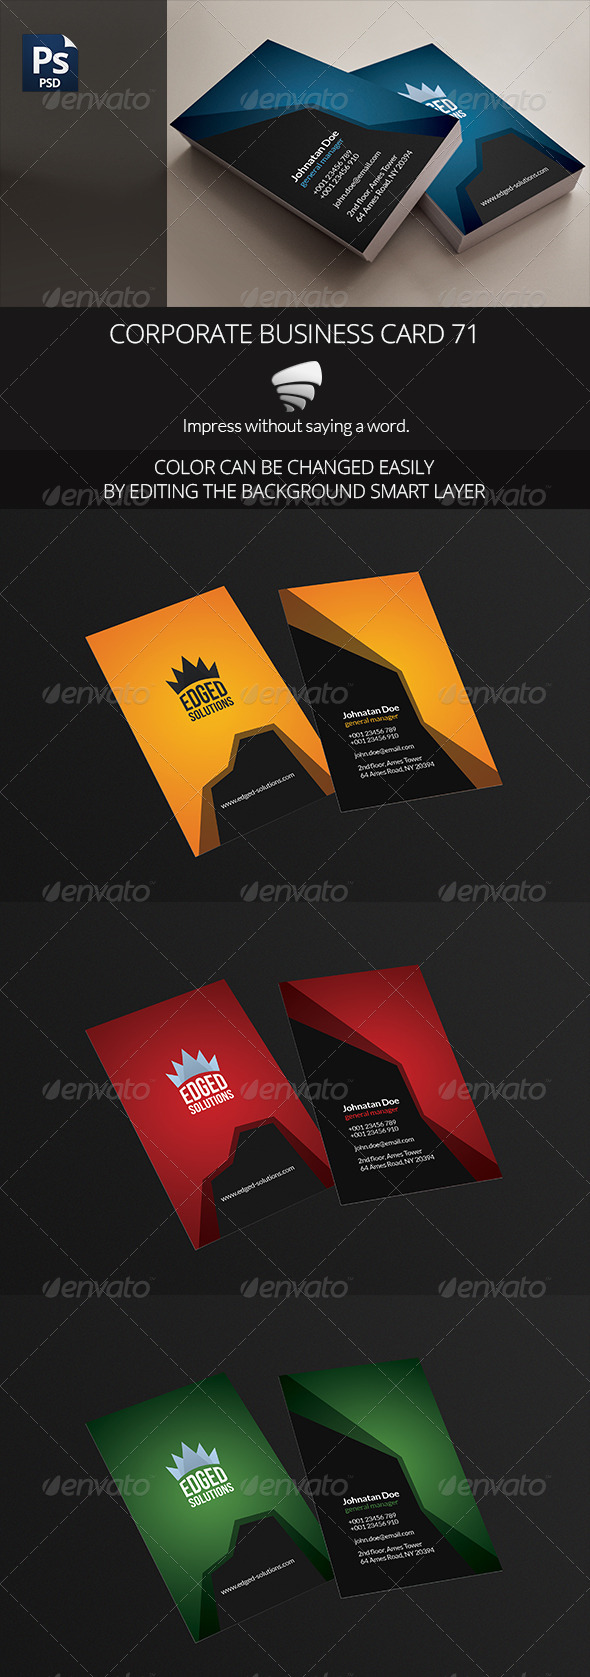 Corporate Business Card 71 - Business Cards Print Templates